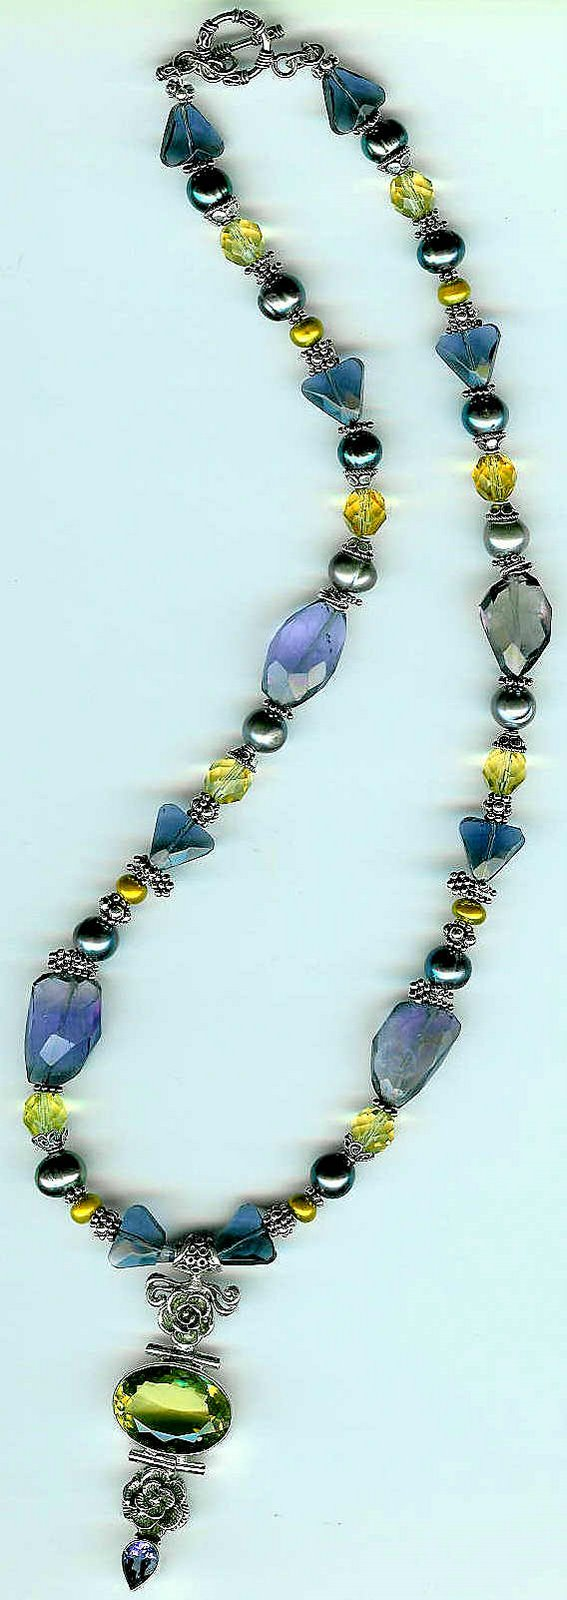 24. Yellow Quartz Pendant, Citrine, Amethysts, Crystals, Freshwater Pearls and Bali Sterling Silver